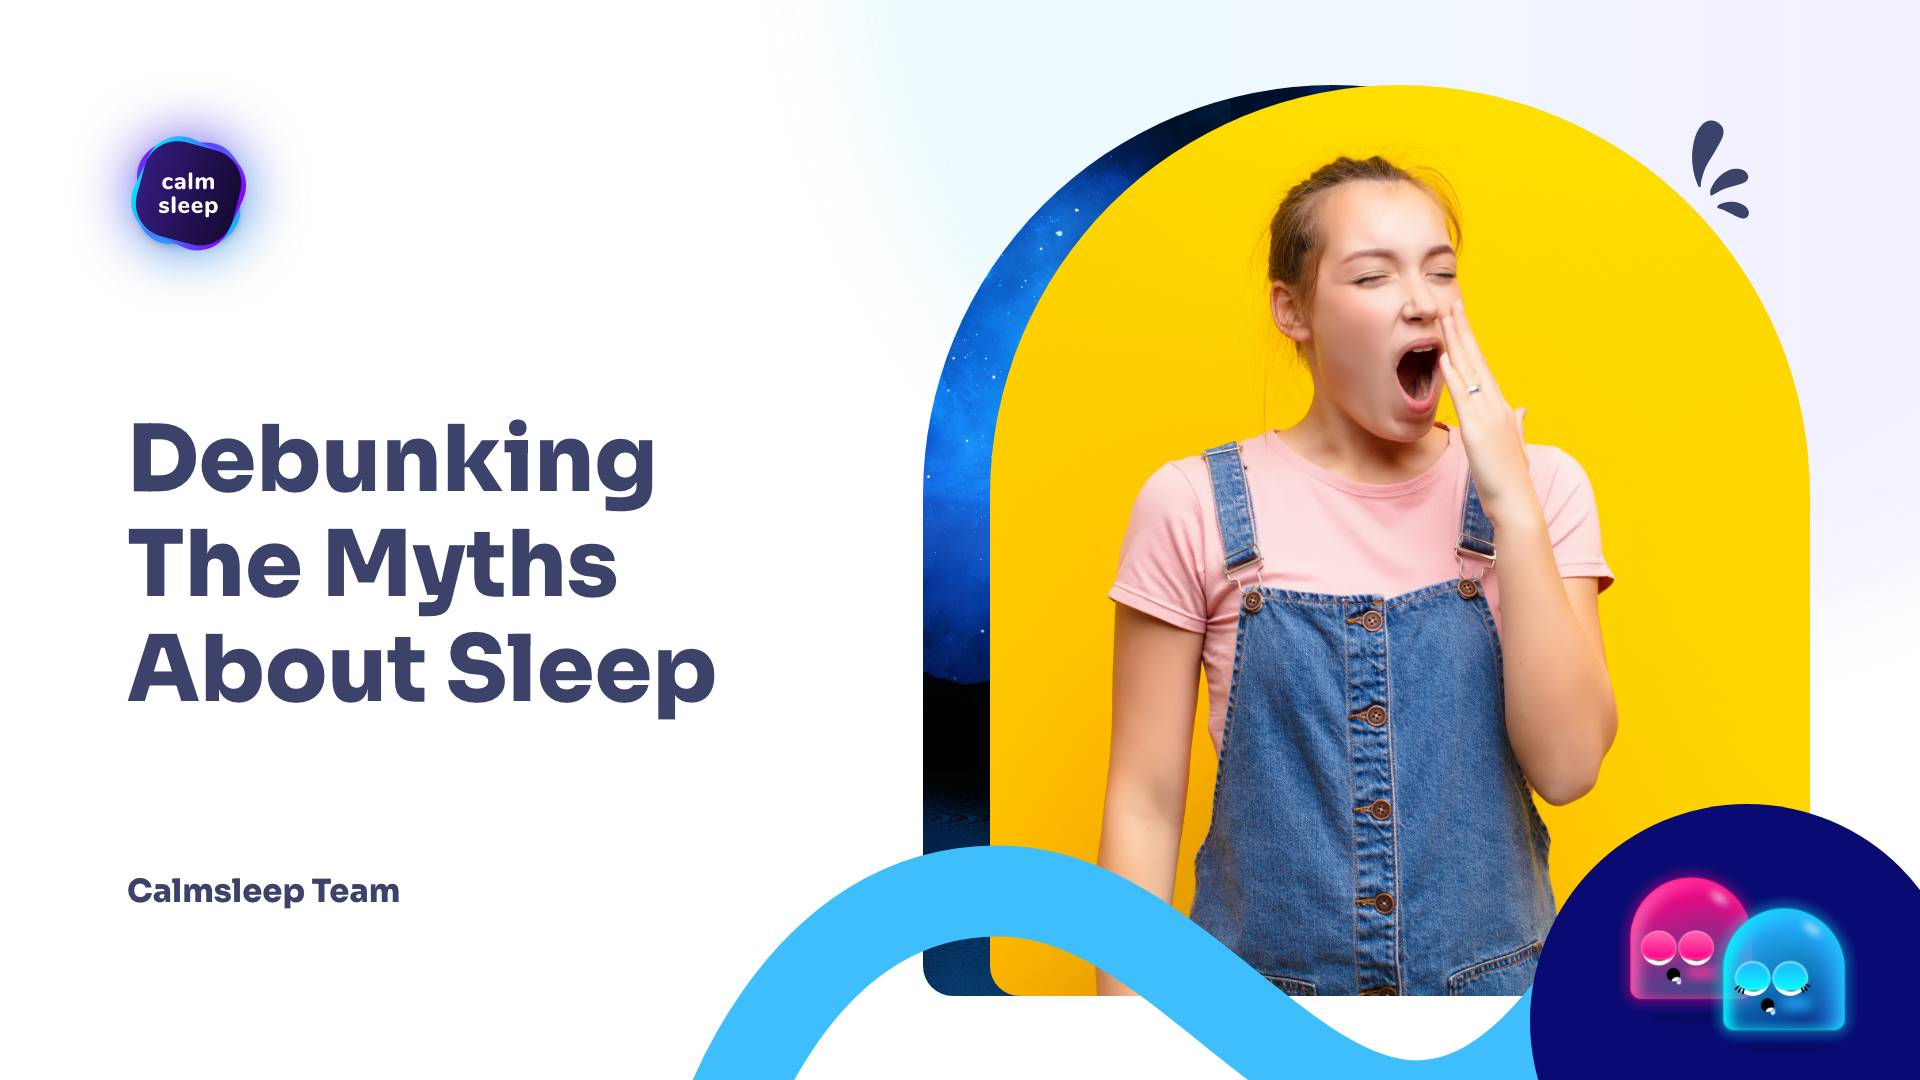 Debunking The Myths About Sleep